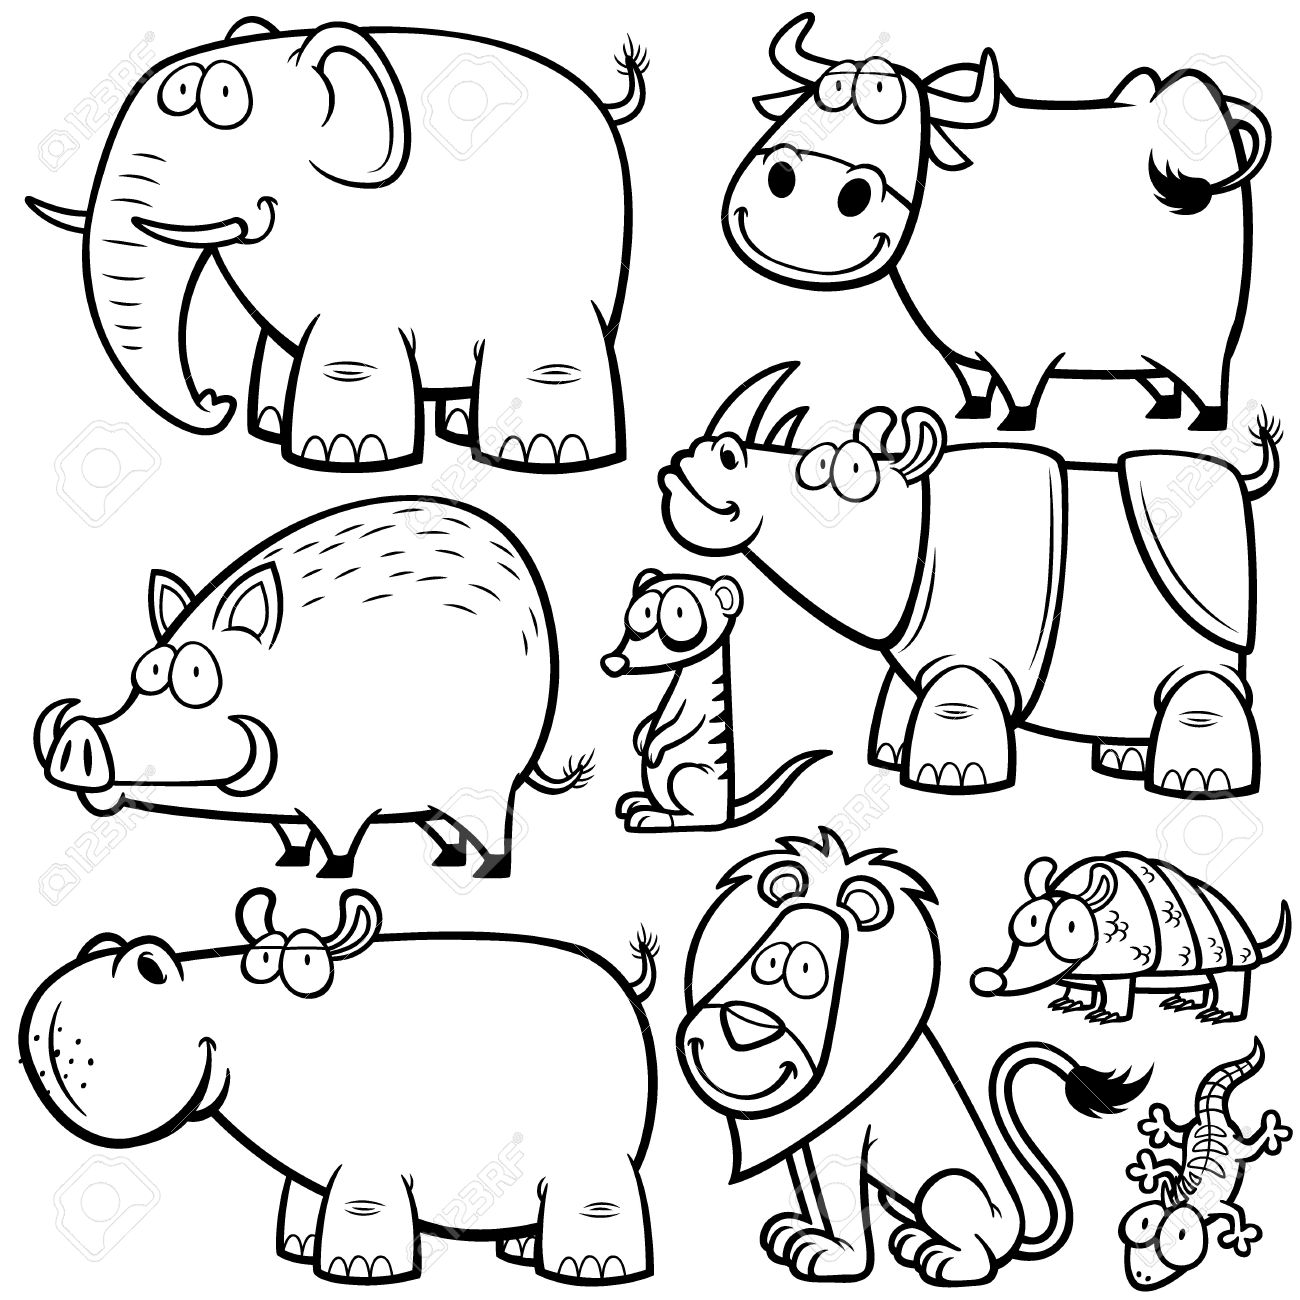 Illustration Of Wild Animals Cartoons - Coloring Book Royalty Free ...